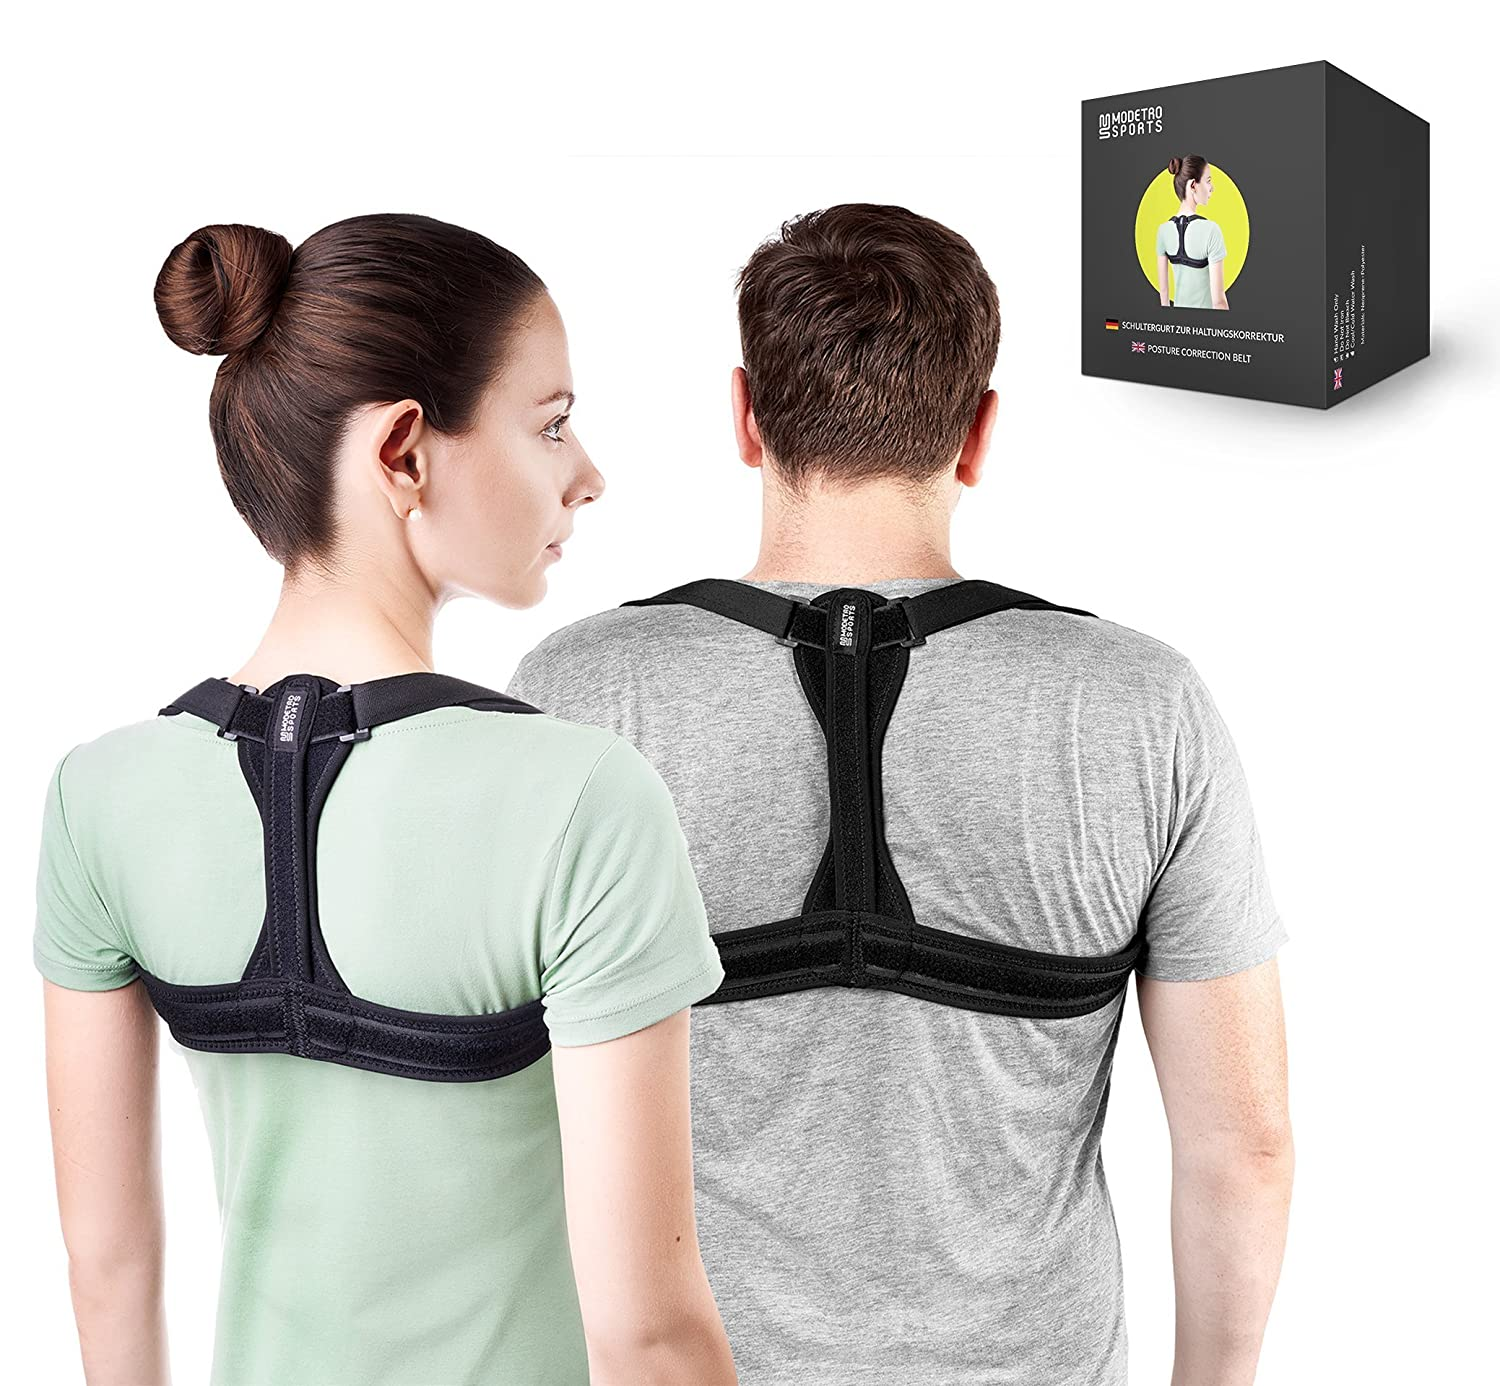 6f9bdc0d50a Modetro Sports Posture Corrector Spinal Support - Physical Therapy Posture  Brace for Men or Women - Back